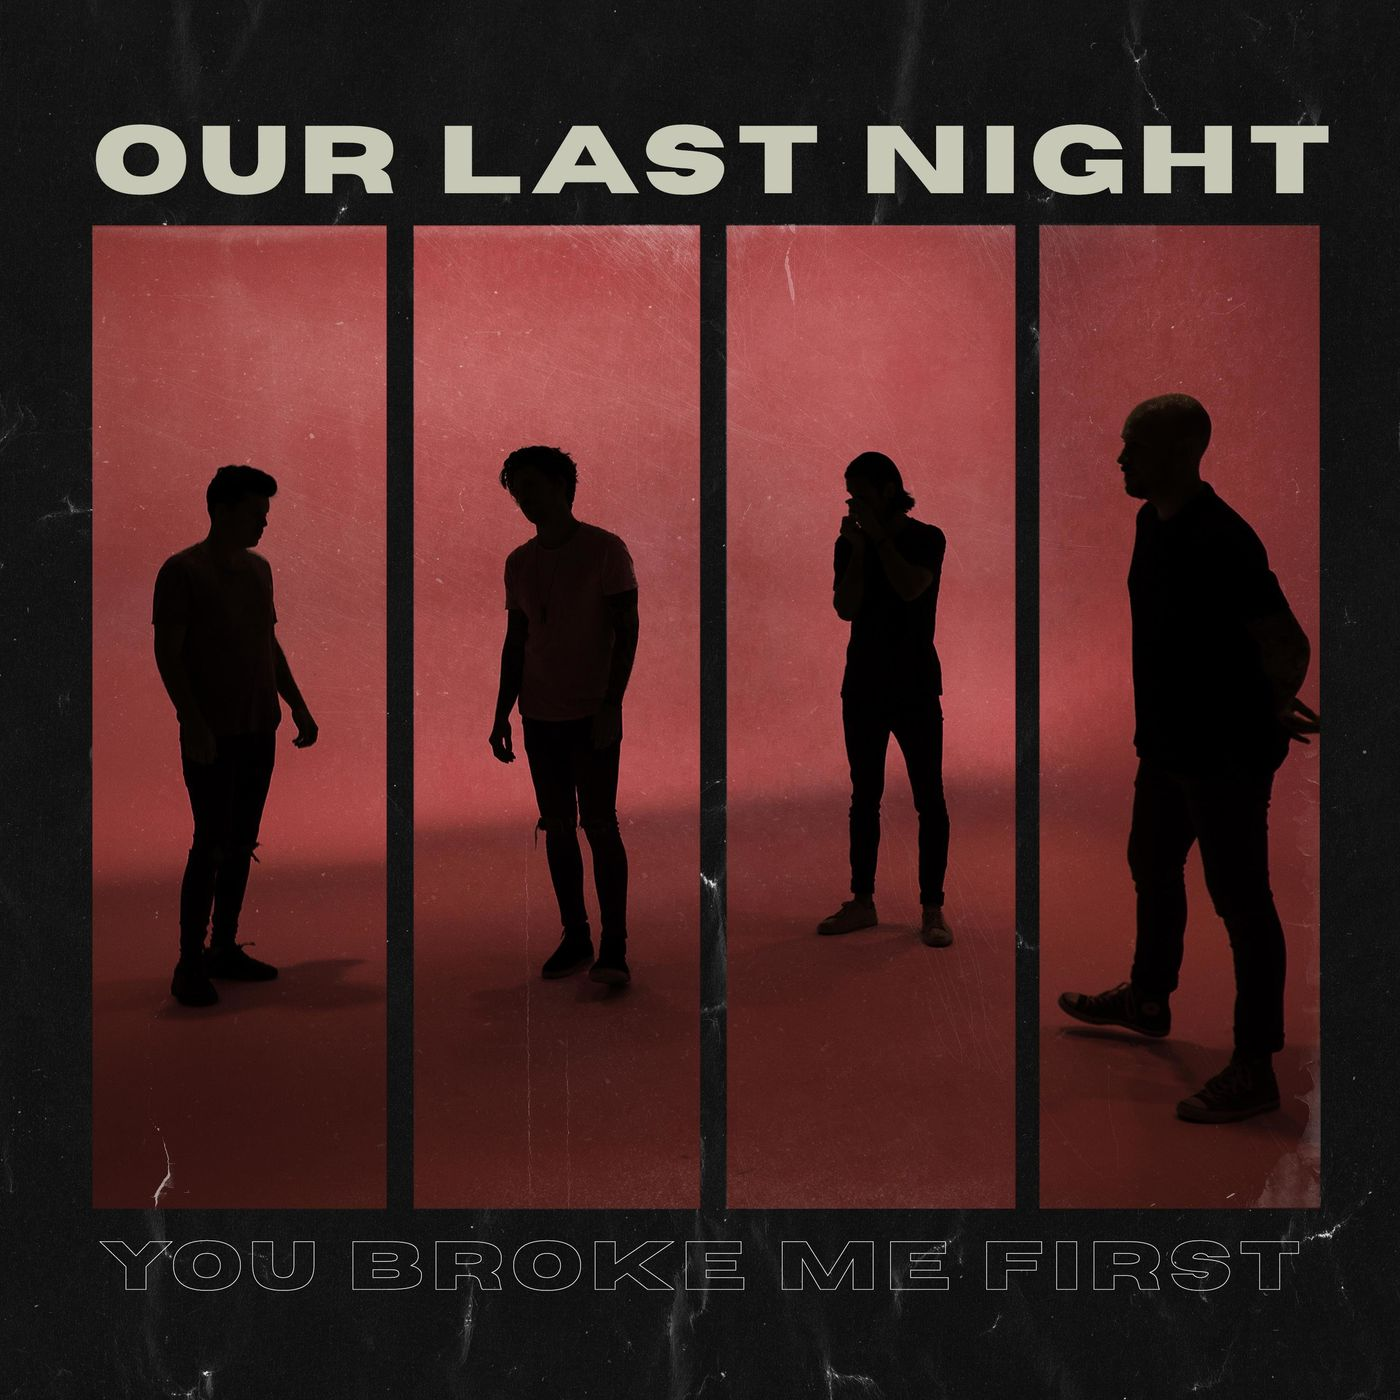 Our Last Night - you broke me first [single] (2021)